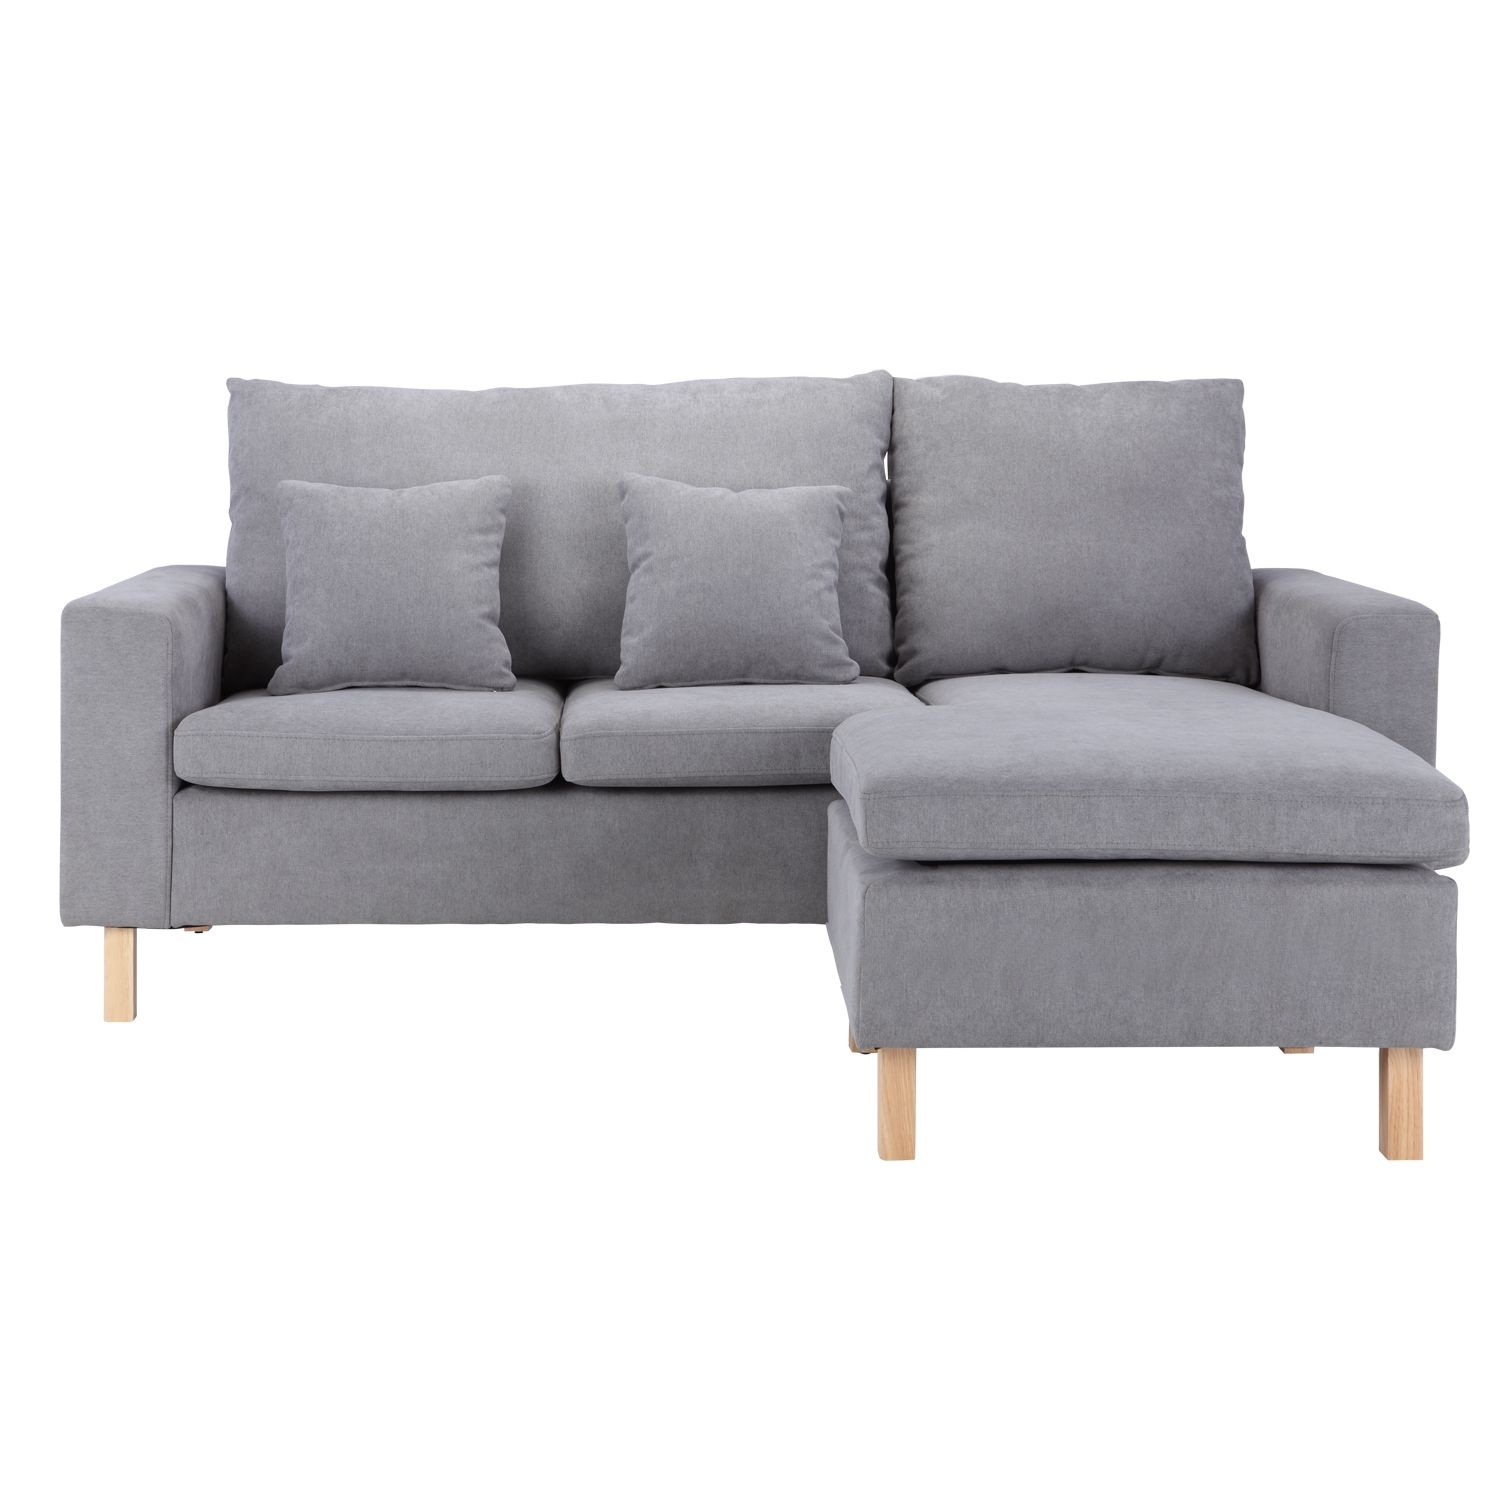 L Shape Sofa Philippines In 2020 L Shaped Sofa L Shaped Sofa Designs Small L Shaped Sofa